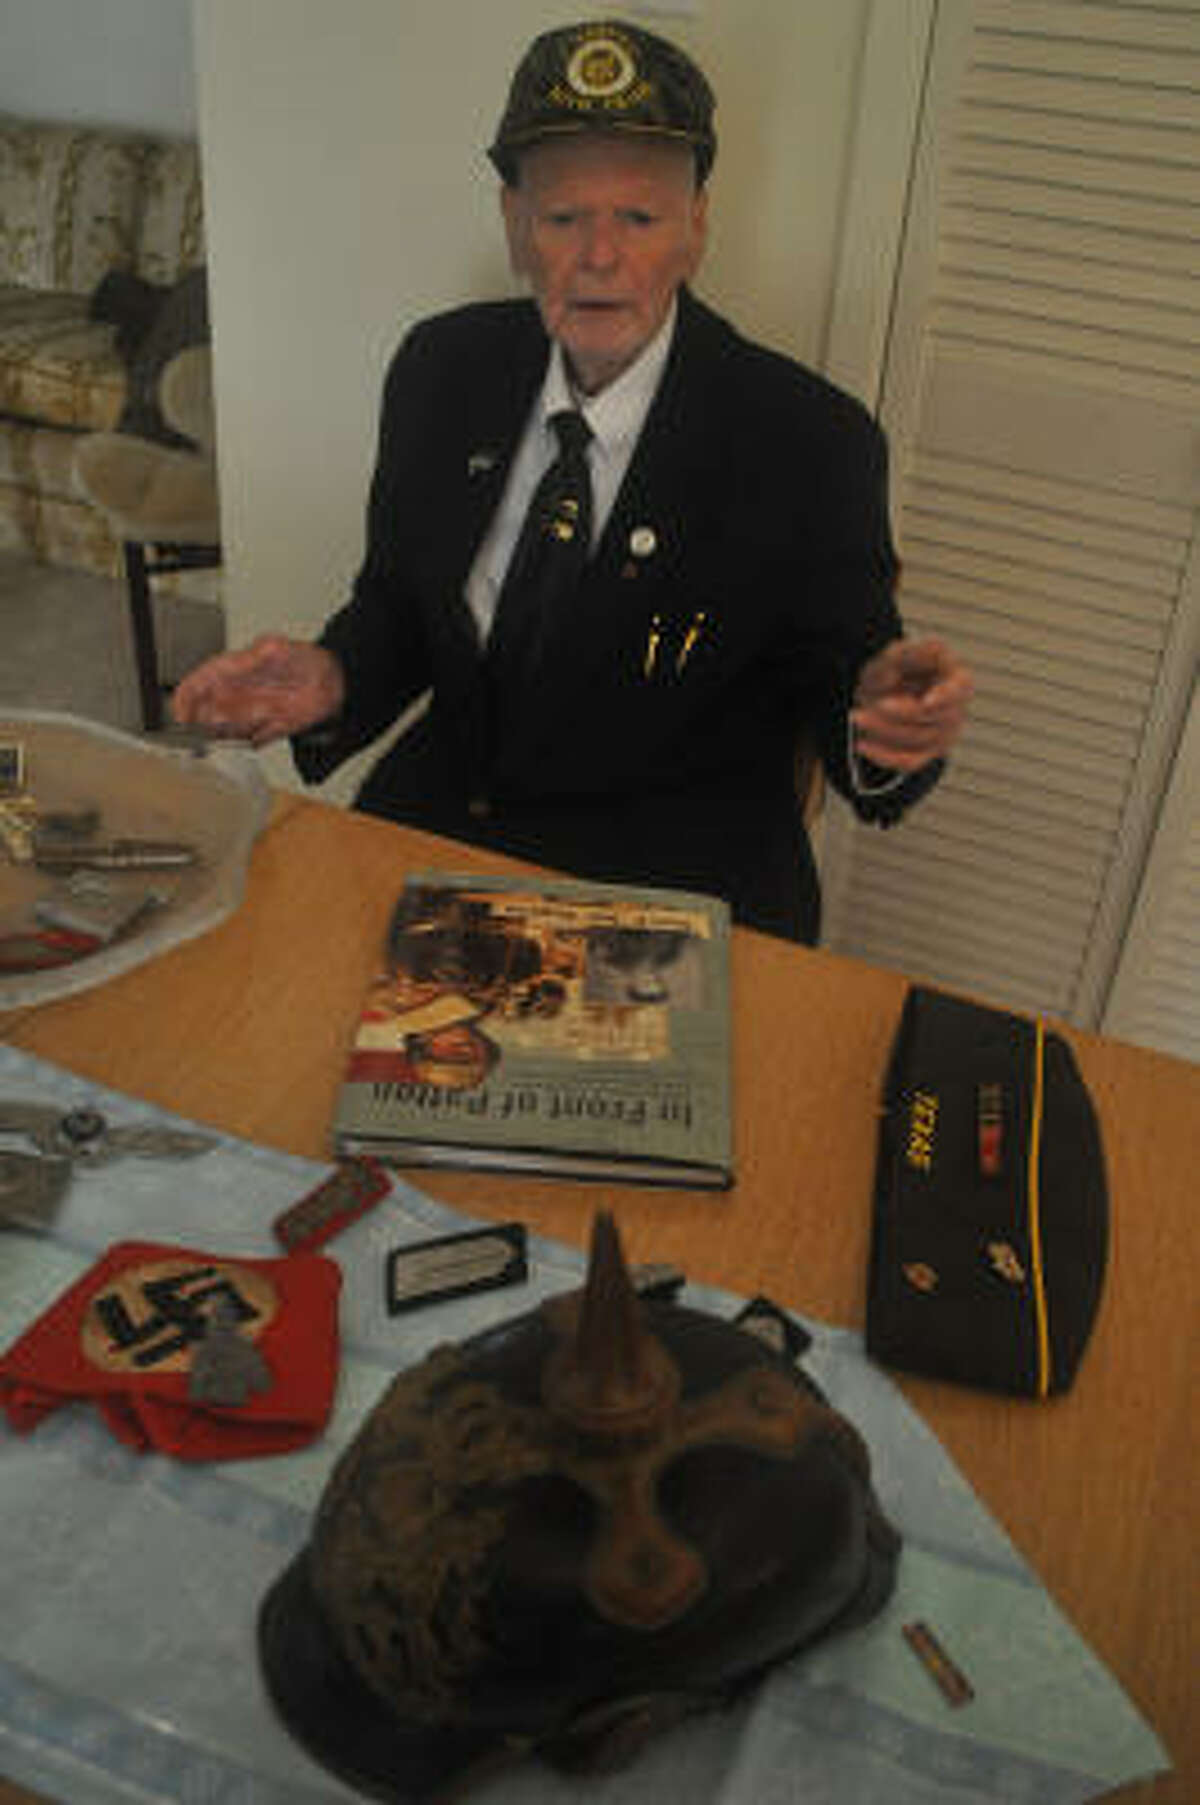 REMEMBERING THE WAR: Denis Bergeron shows some of his World War II relics and the book he wrote about his war experiences.